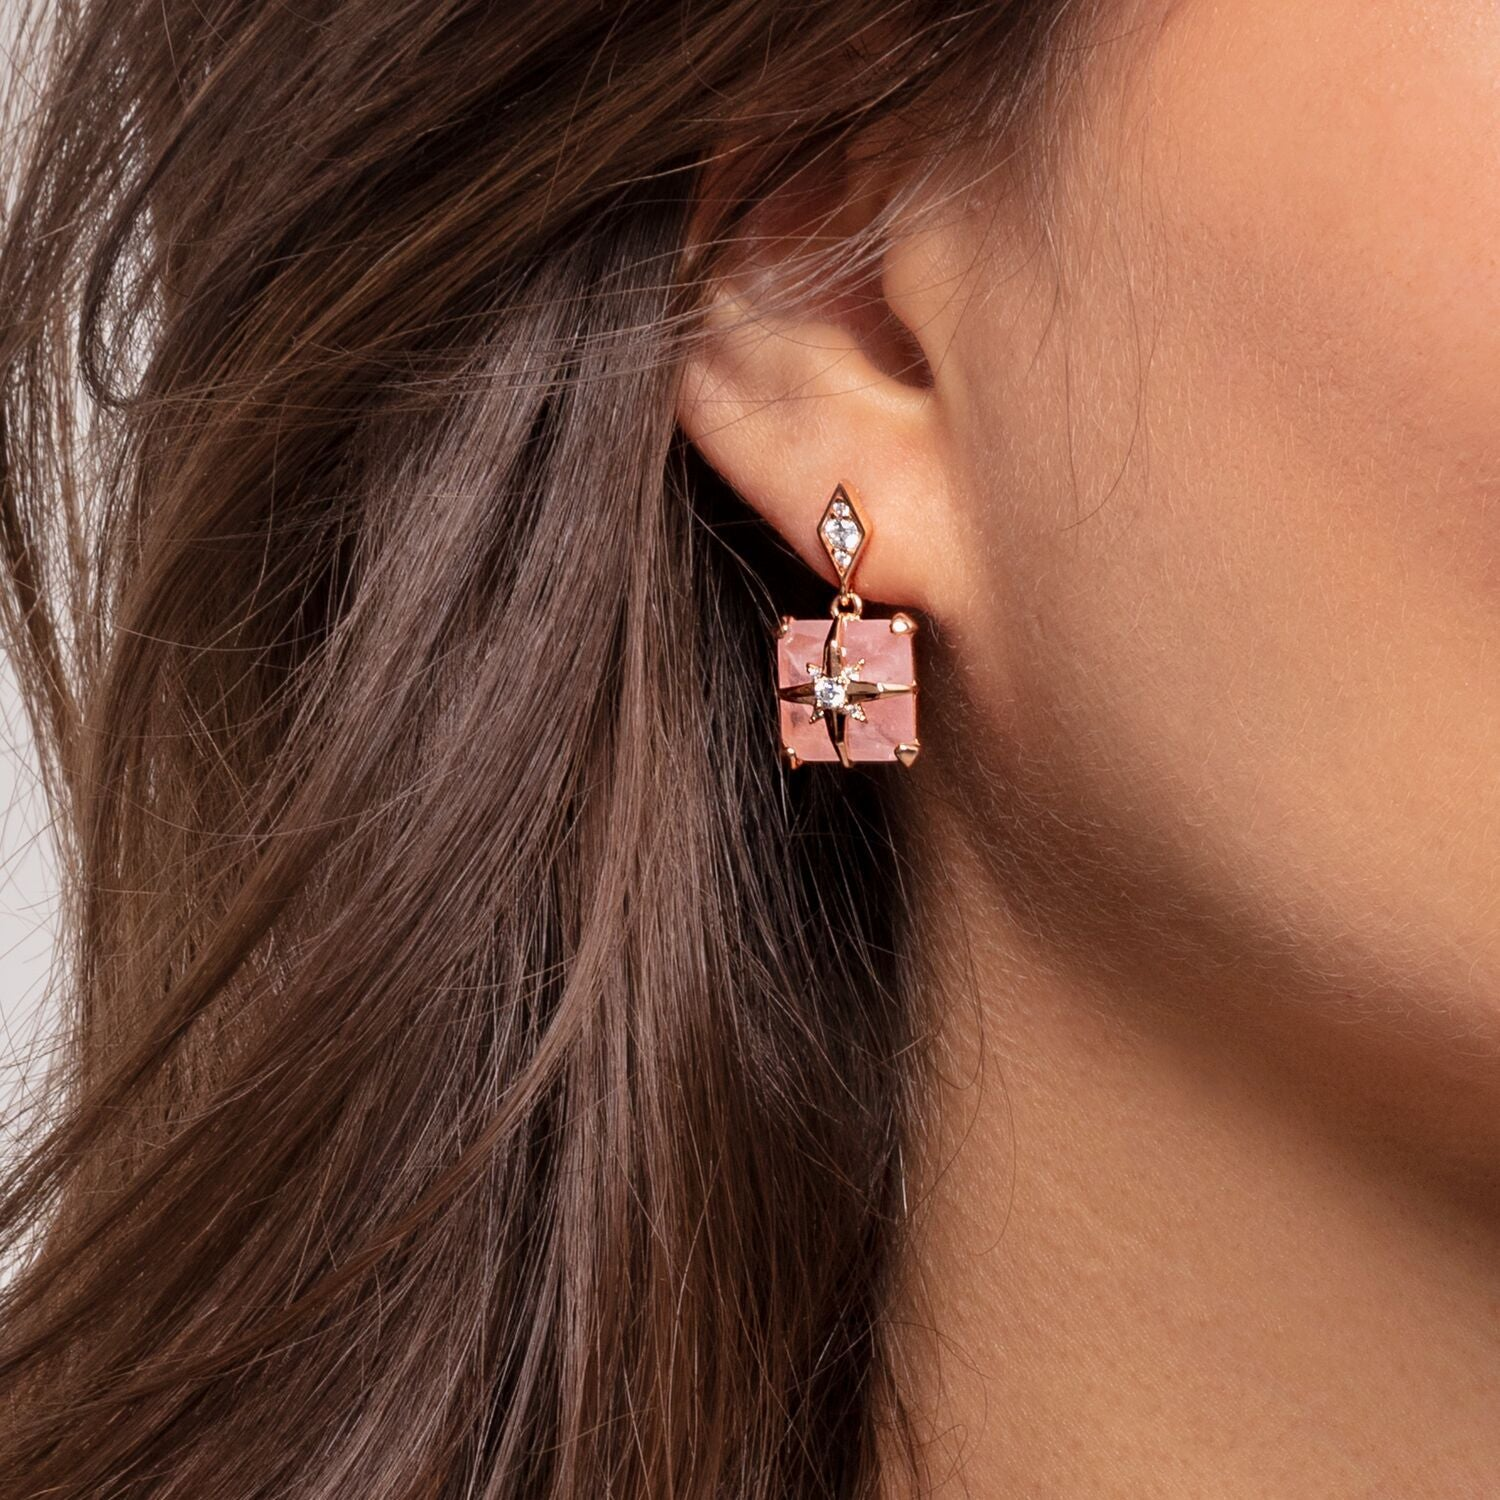 Pink Stone Earrings with Star